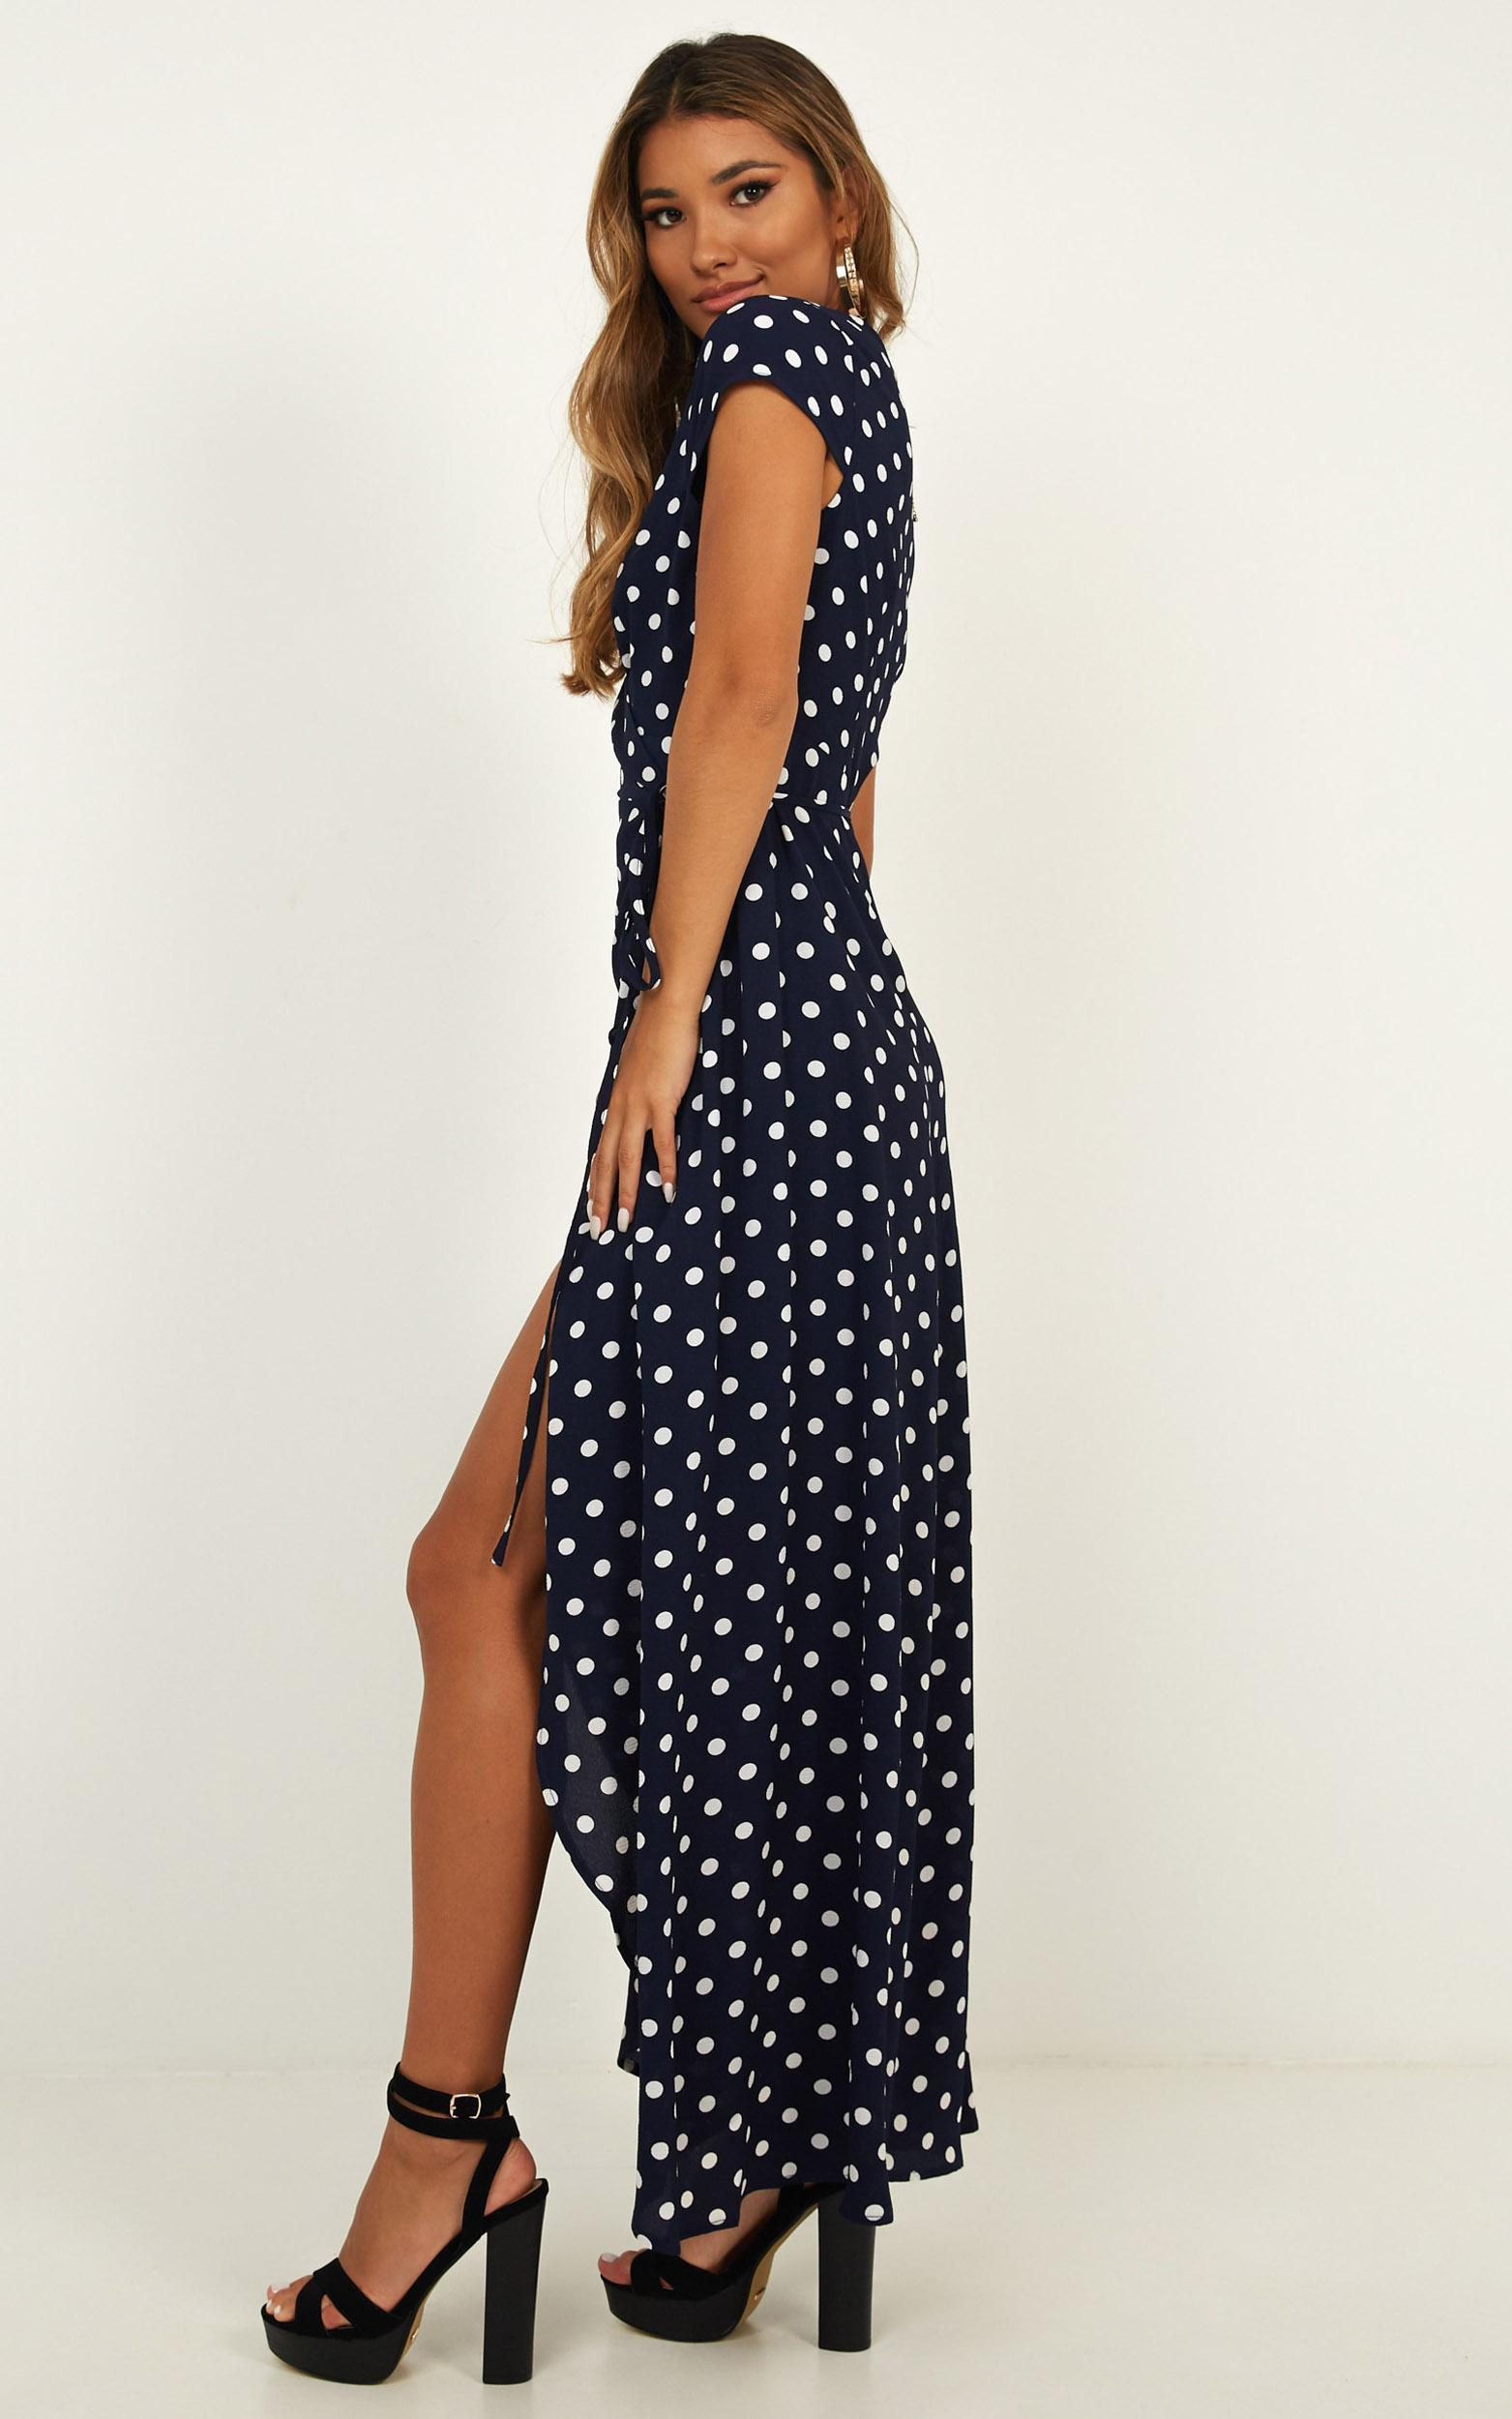 Wrap and Cross maxi dress in navy spot - 20 (XXXXL), Navy, hi-res image number null